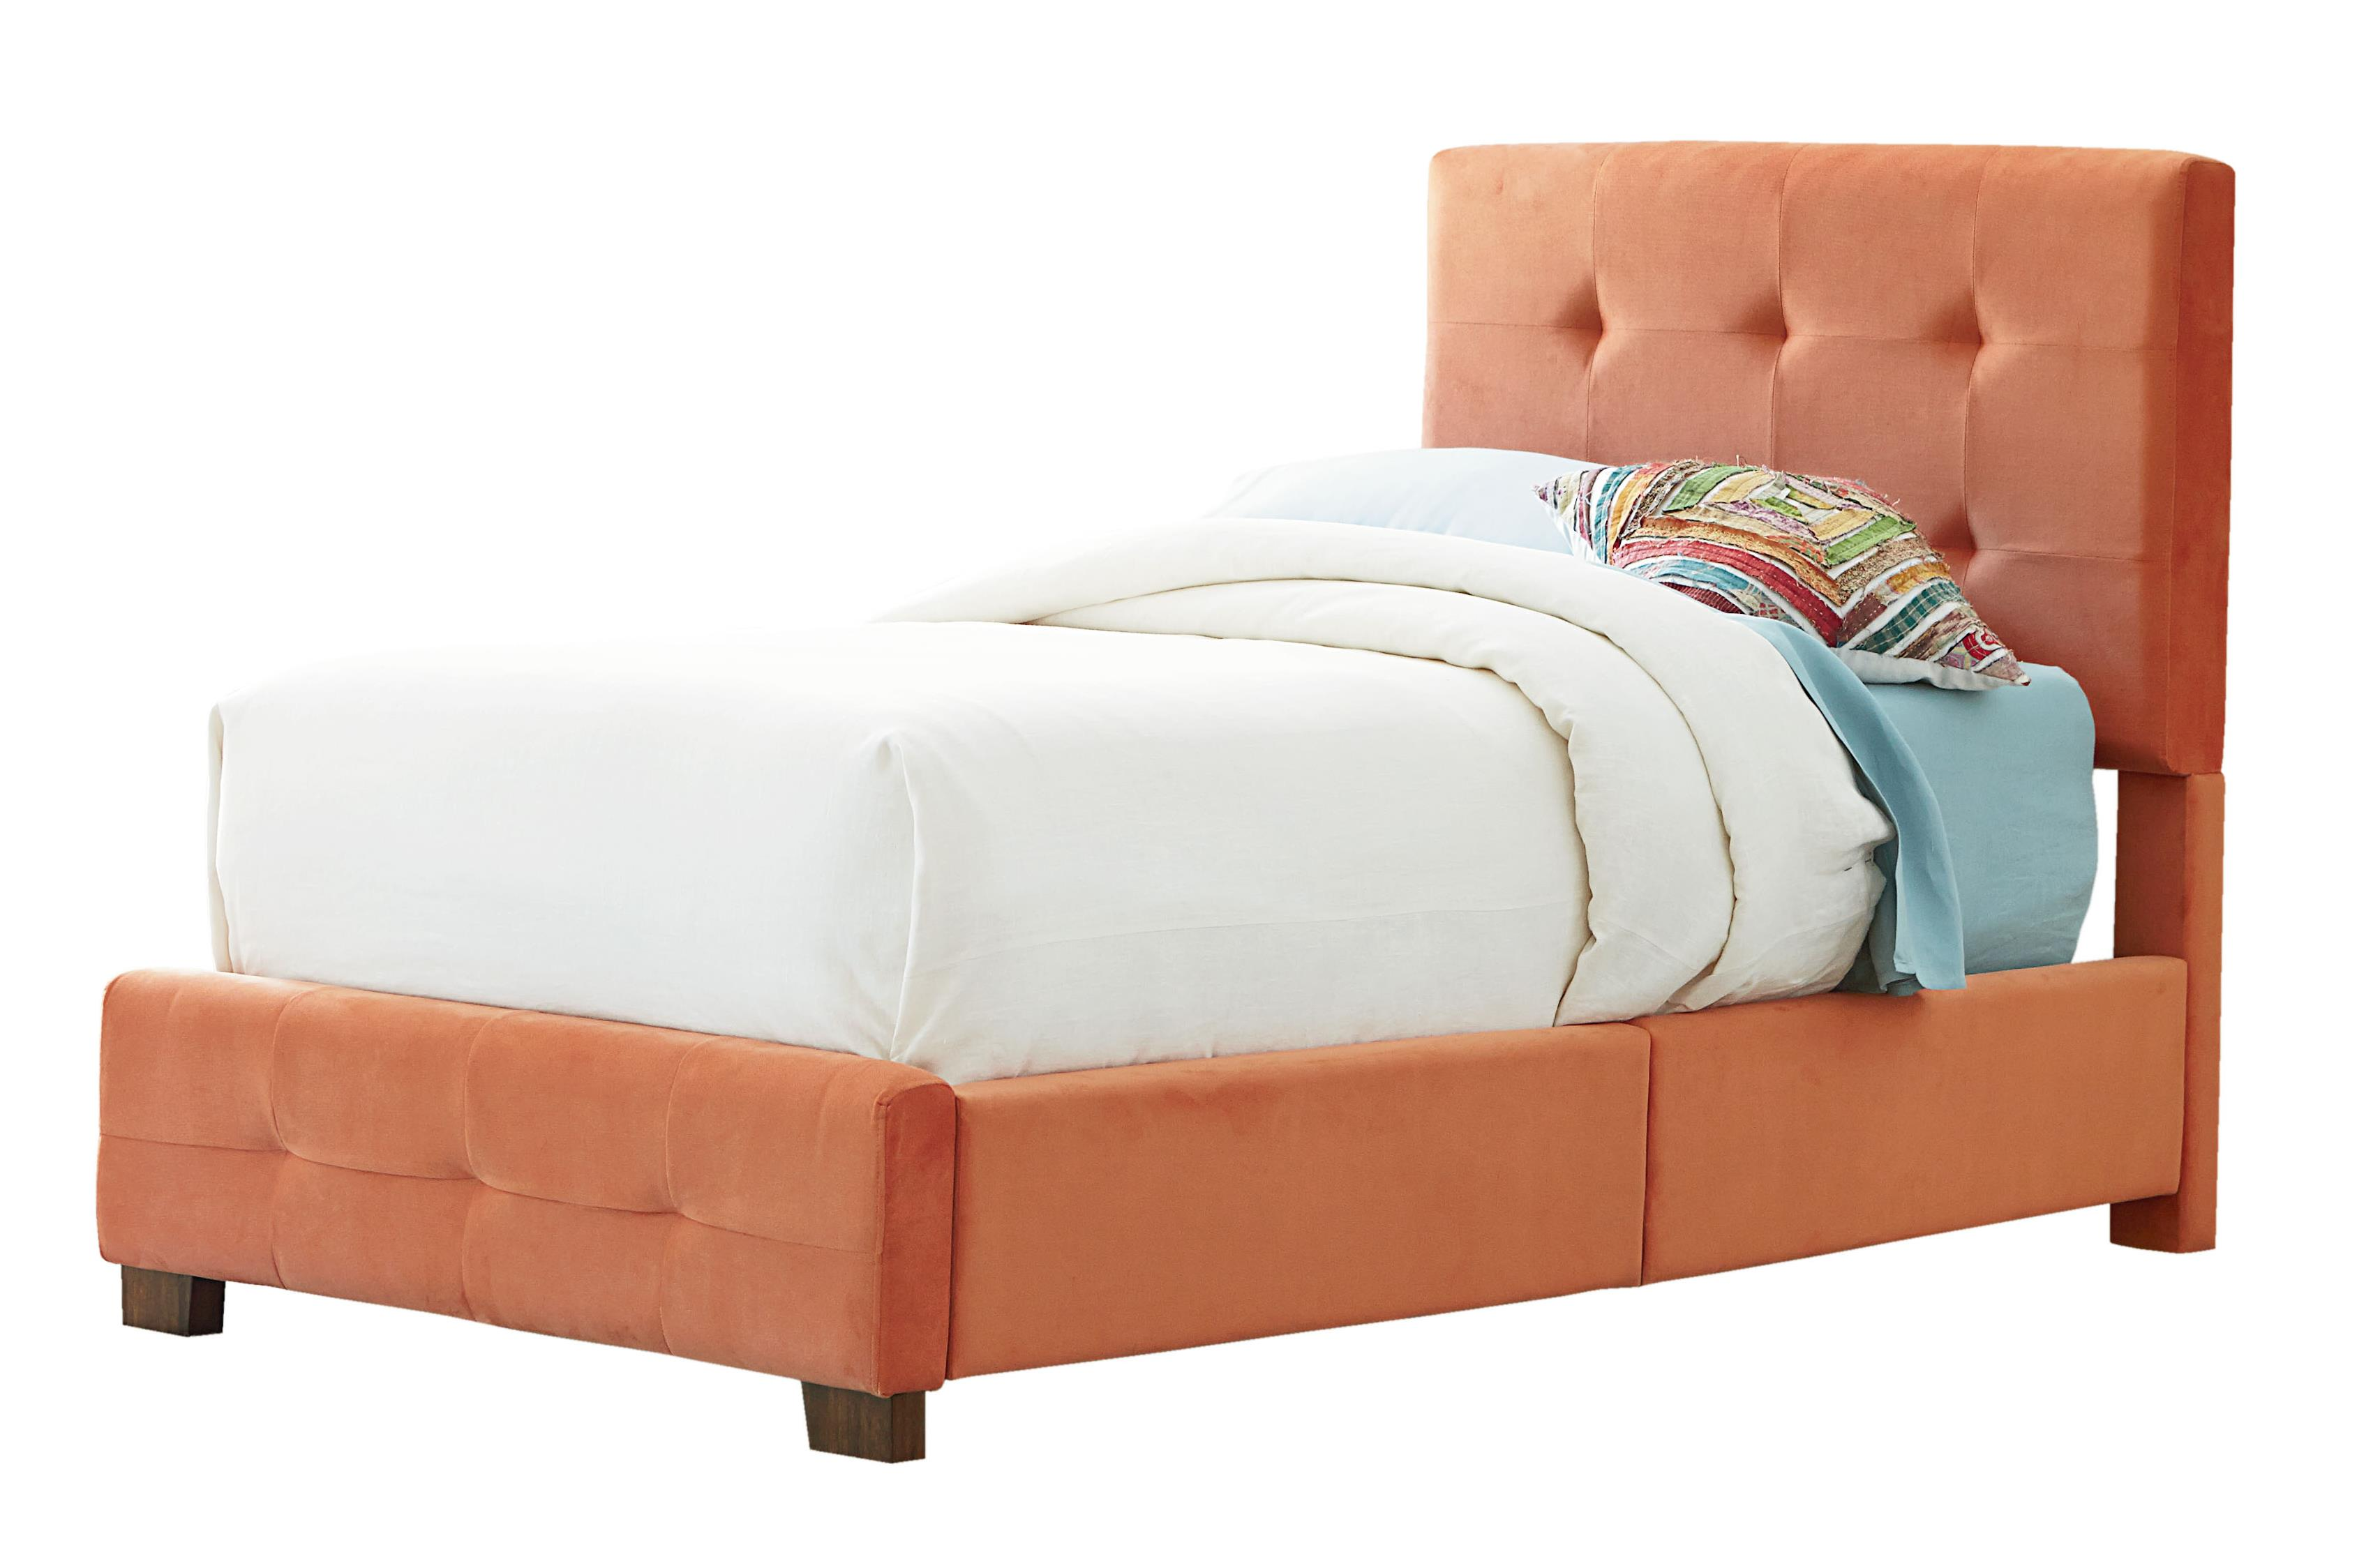 Standard Furniture Madison Twin Upholstered Bed with Tufting - Item Number: 99202